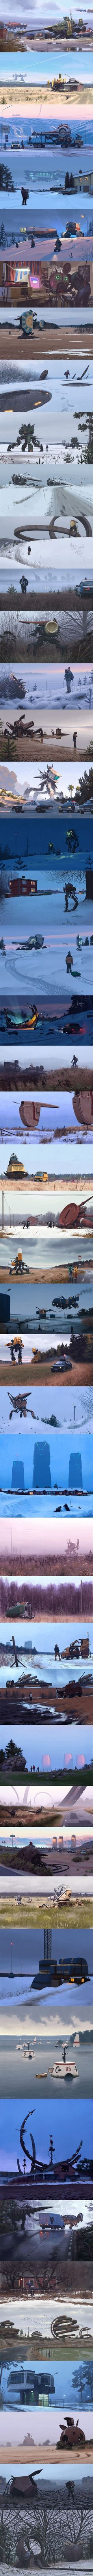 i'd really like to know what's going on in all of these images... is it machine, robot or vehicle... friend or foe... ET or Earth made???